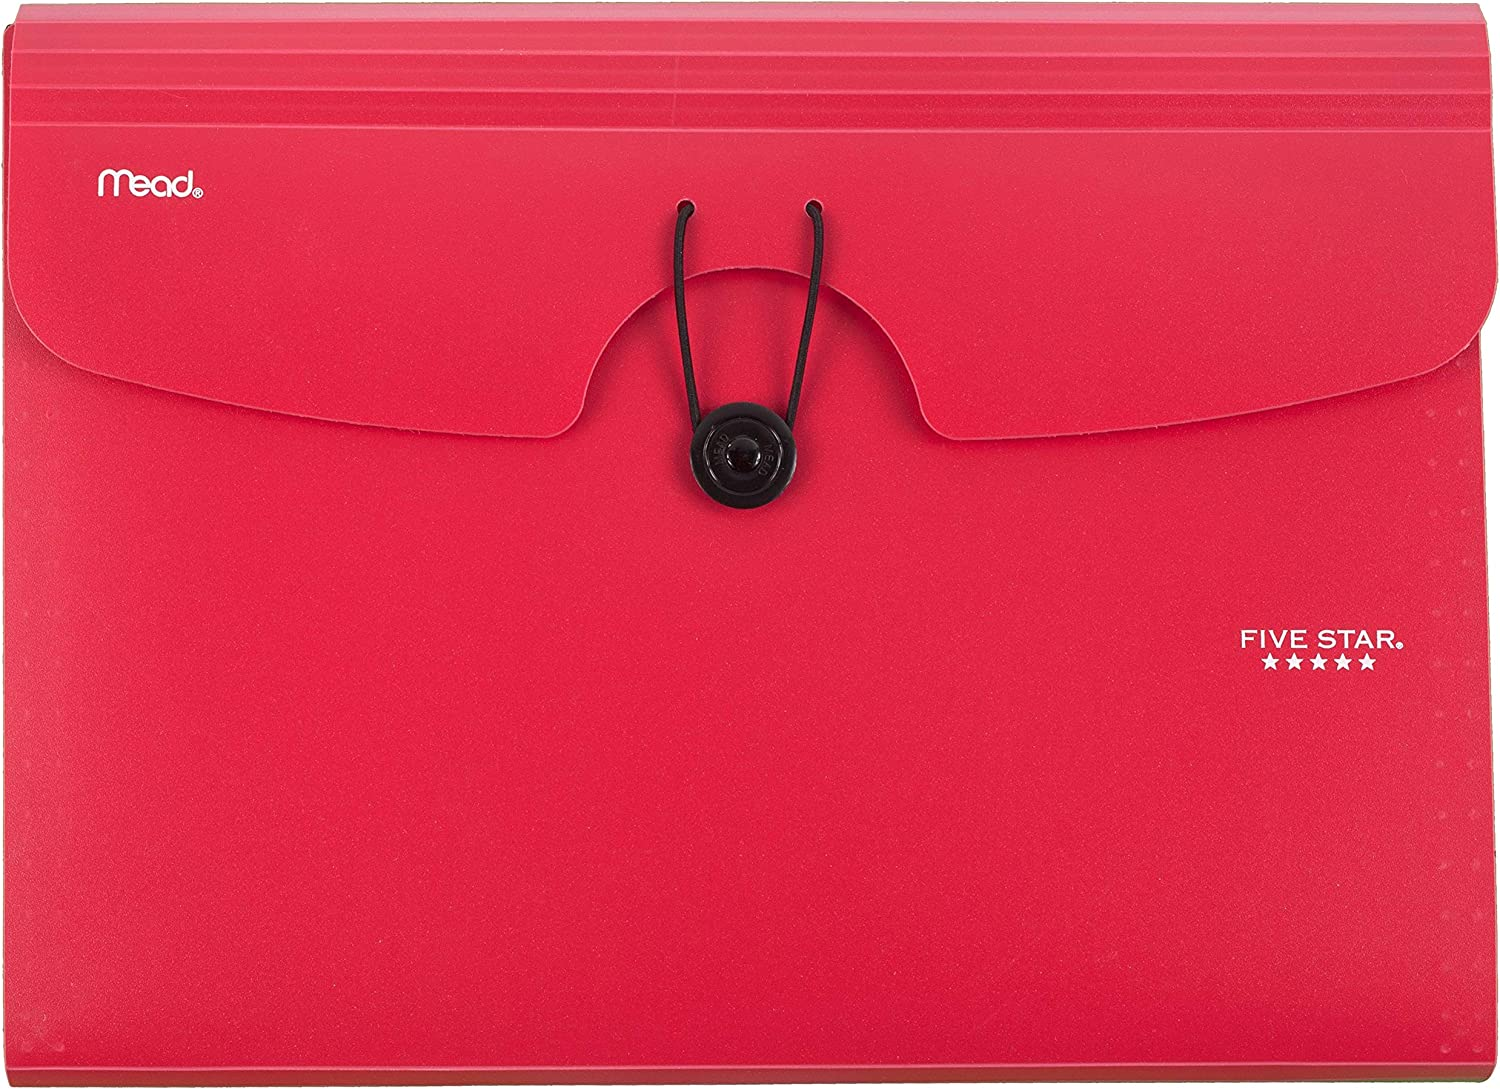 Five Star 6-Pocket Expanding File Organizer, Plastic Expandable Letter Size File Folders with Pockets, Home Office Supplies, Portable Paper Organizer for Receipts, Bills, Documents, Red (72387)